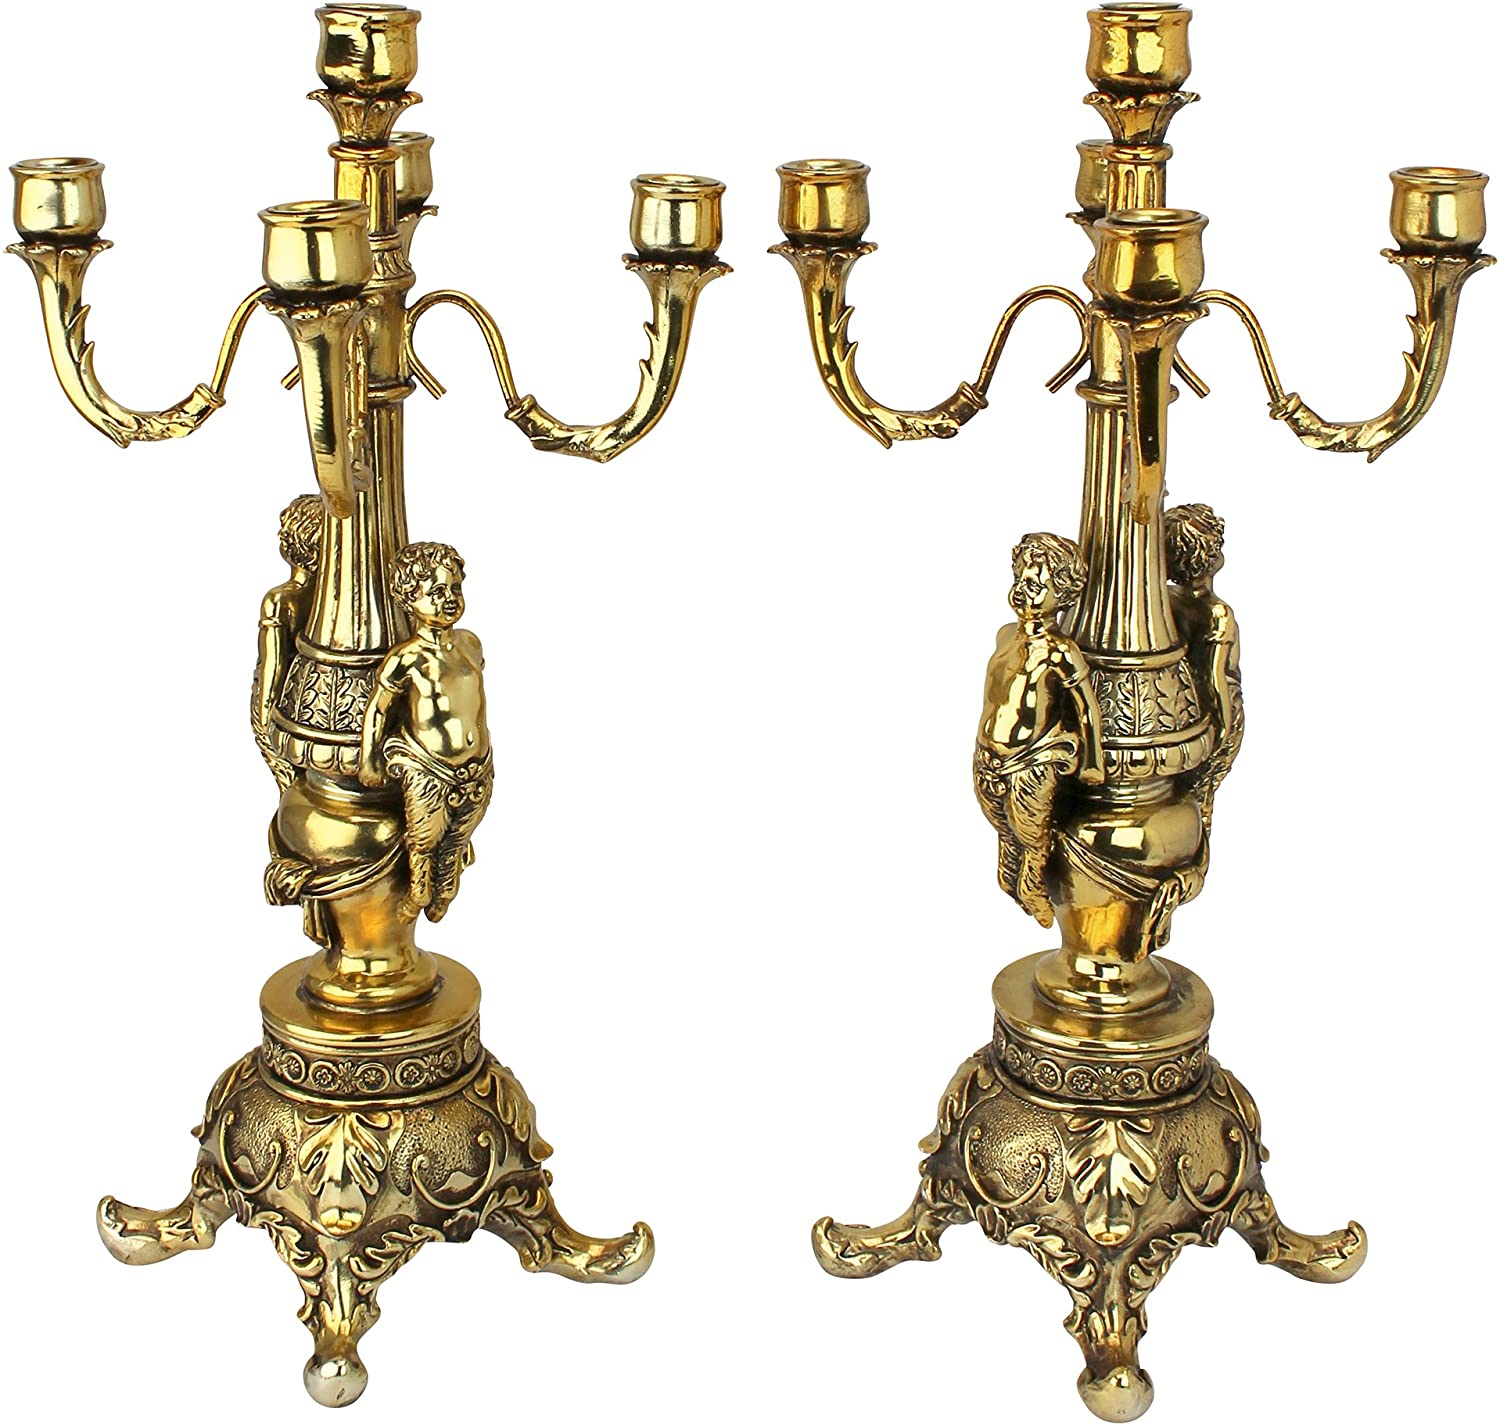 Design Toscano Grande Chateau Beaumont Candelabra Candle Holders, 20 Inch, Set of Two, Polyresin, Gold